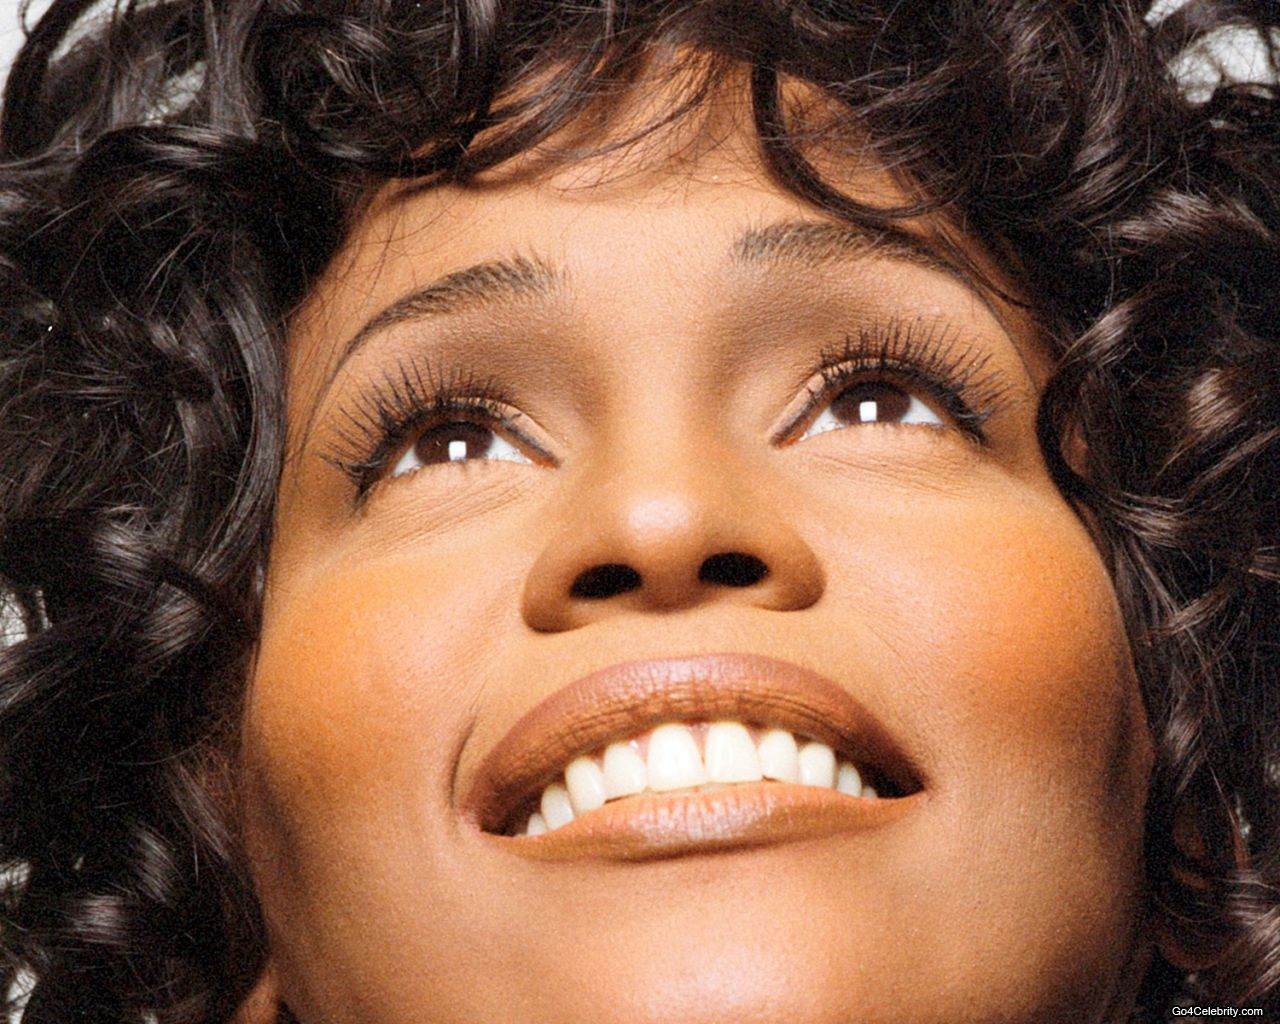 Source: Wikipedia - http://en.wikipedia.org/wiki/Whitney_Houston